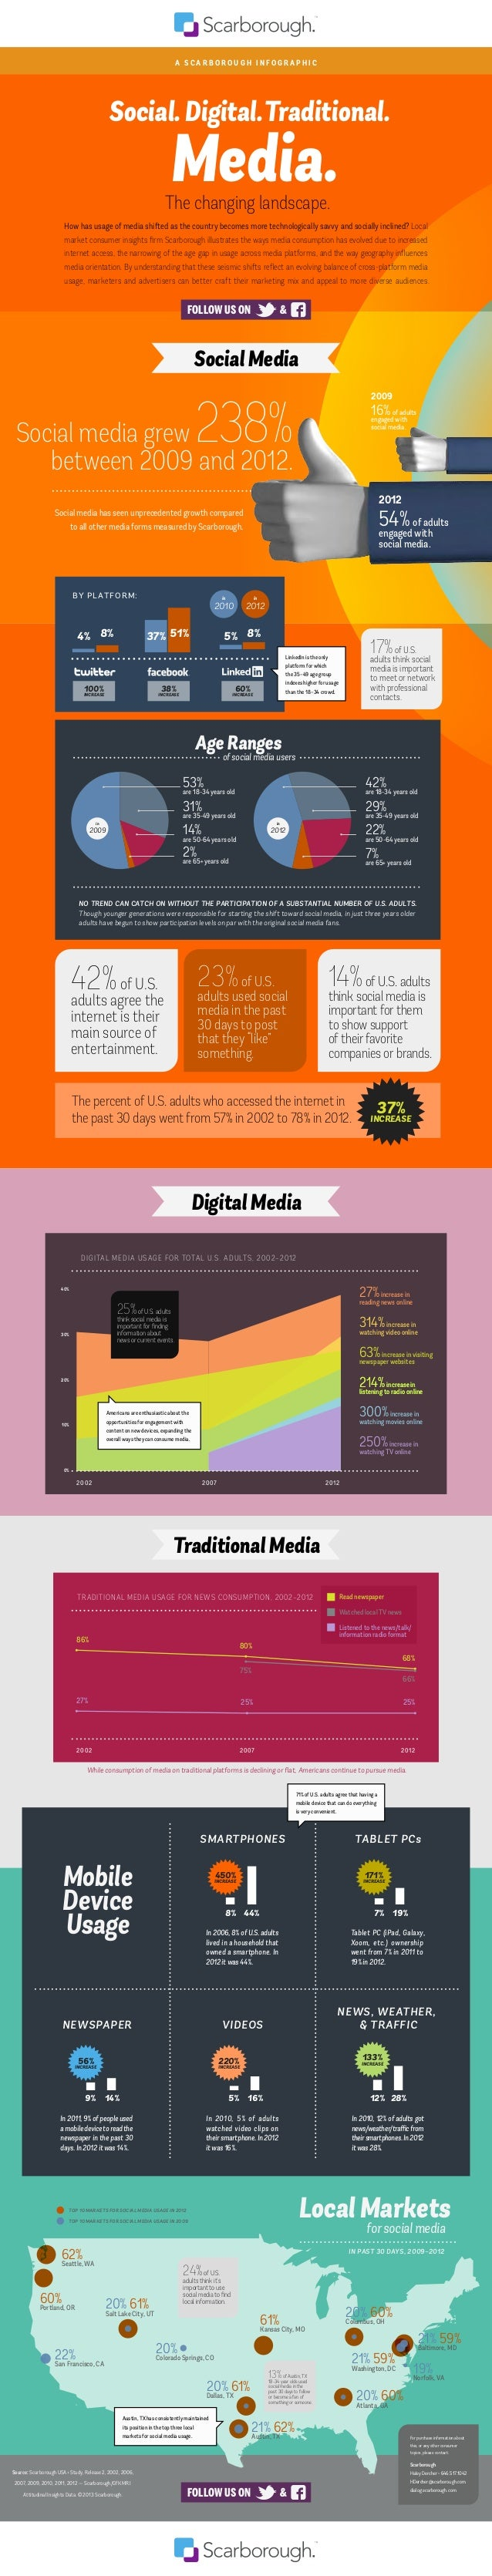 201220072002 TRADITIONAL MEDIA USAGE FOR NEWS CONSUMPTION, 2002–2012 86% 80% 68% 27% 25% 25% 75% 66% 201220072002 DIGITAL ...